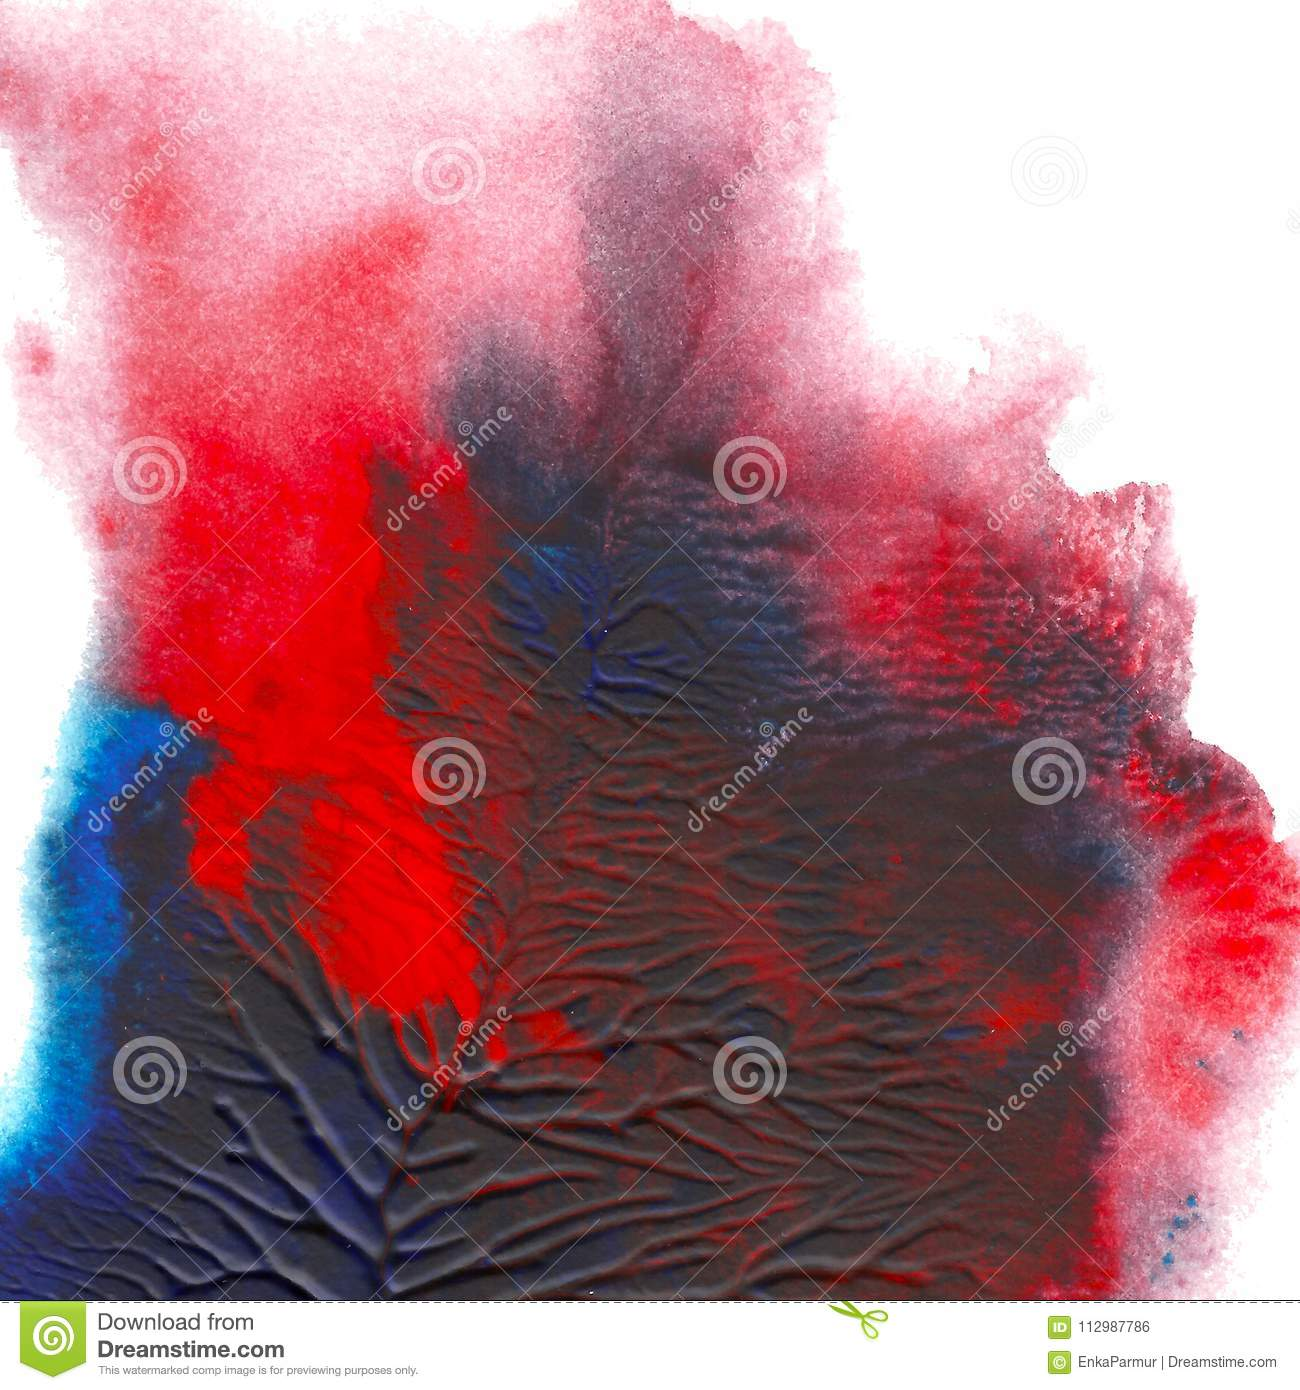 Abstract acrylic painted background. Blue red textured vibrant color. Grunge template for your design.